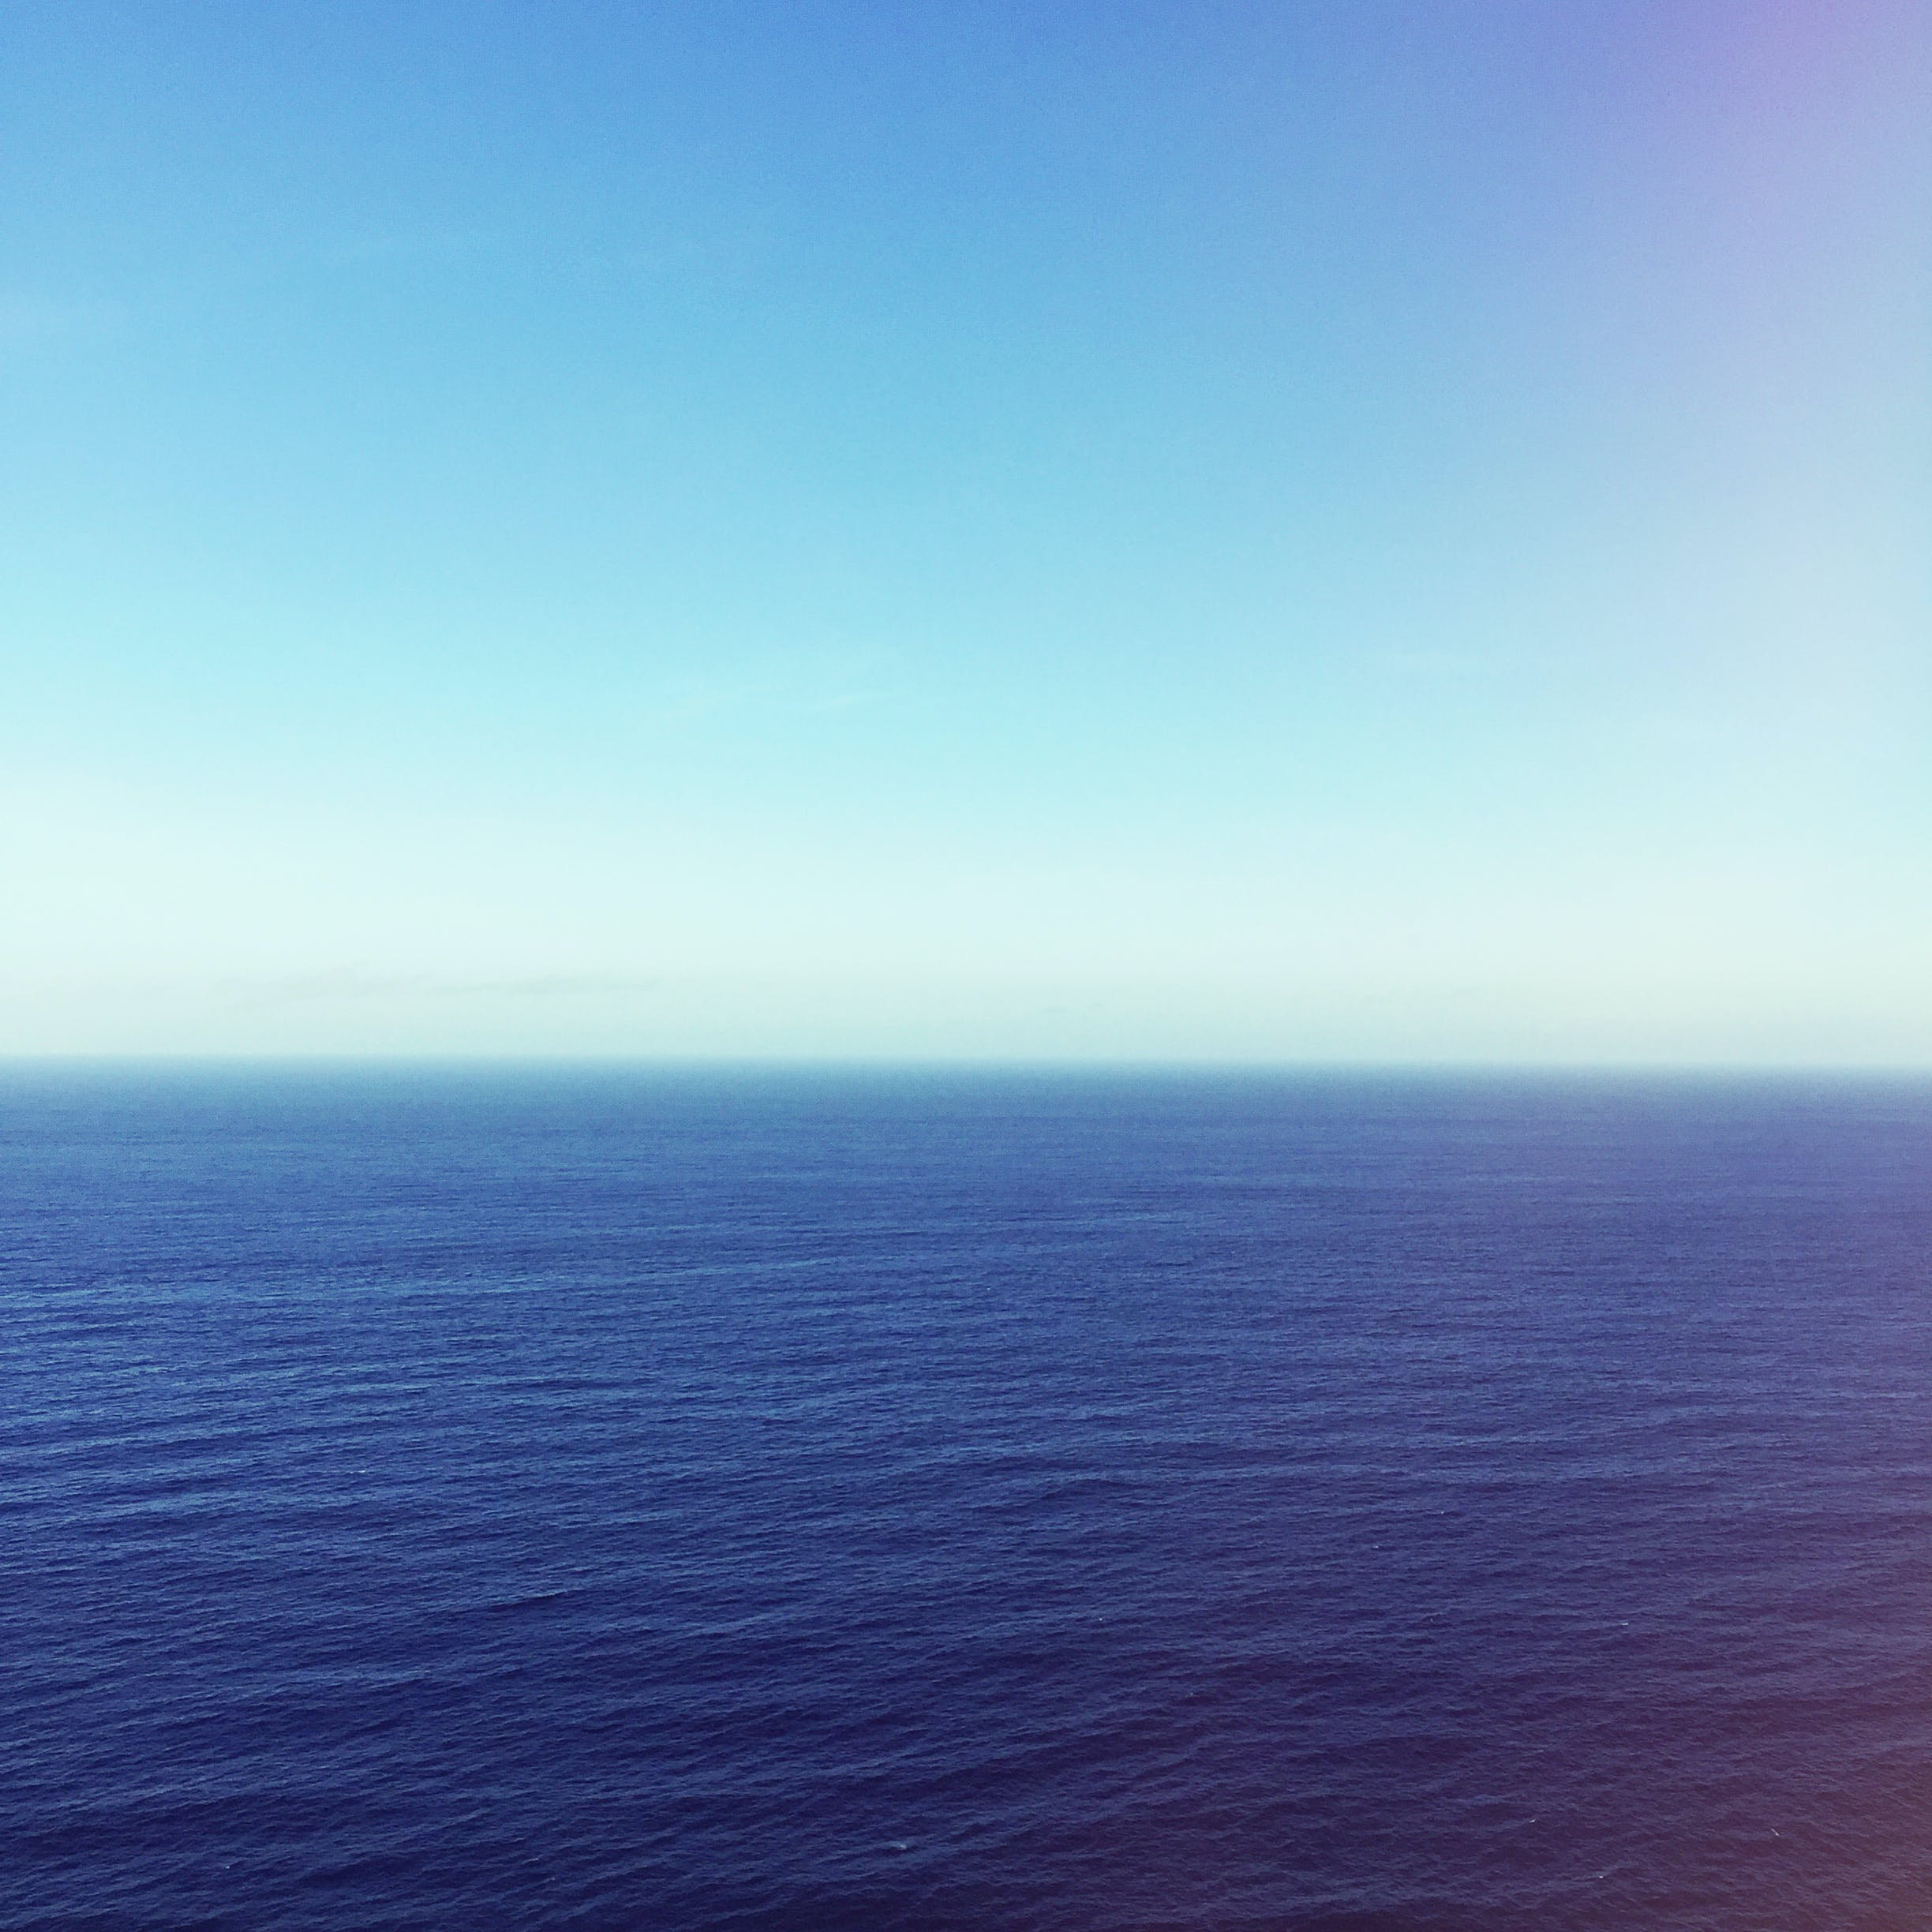 Free stock photo of sea, water, blue, ocean